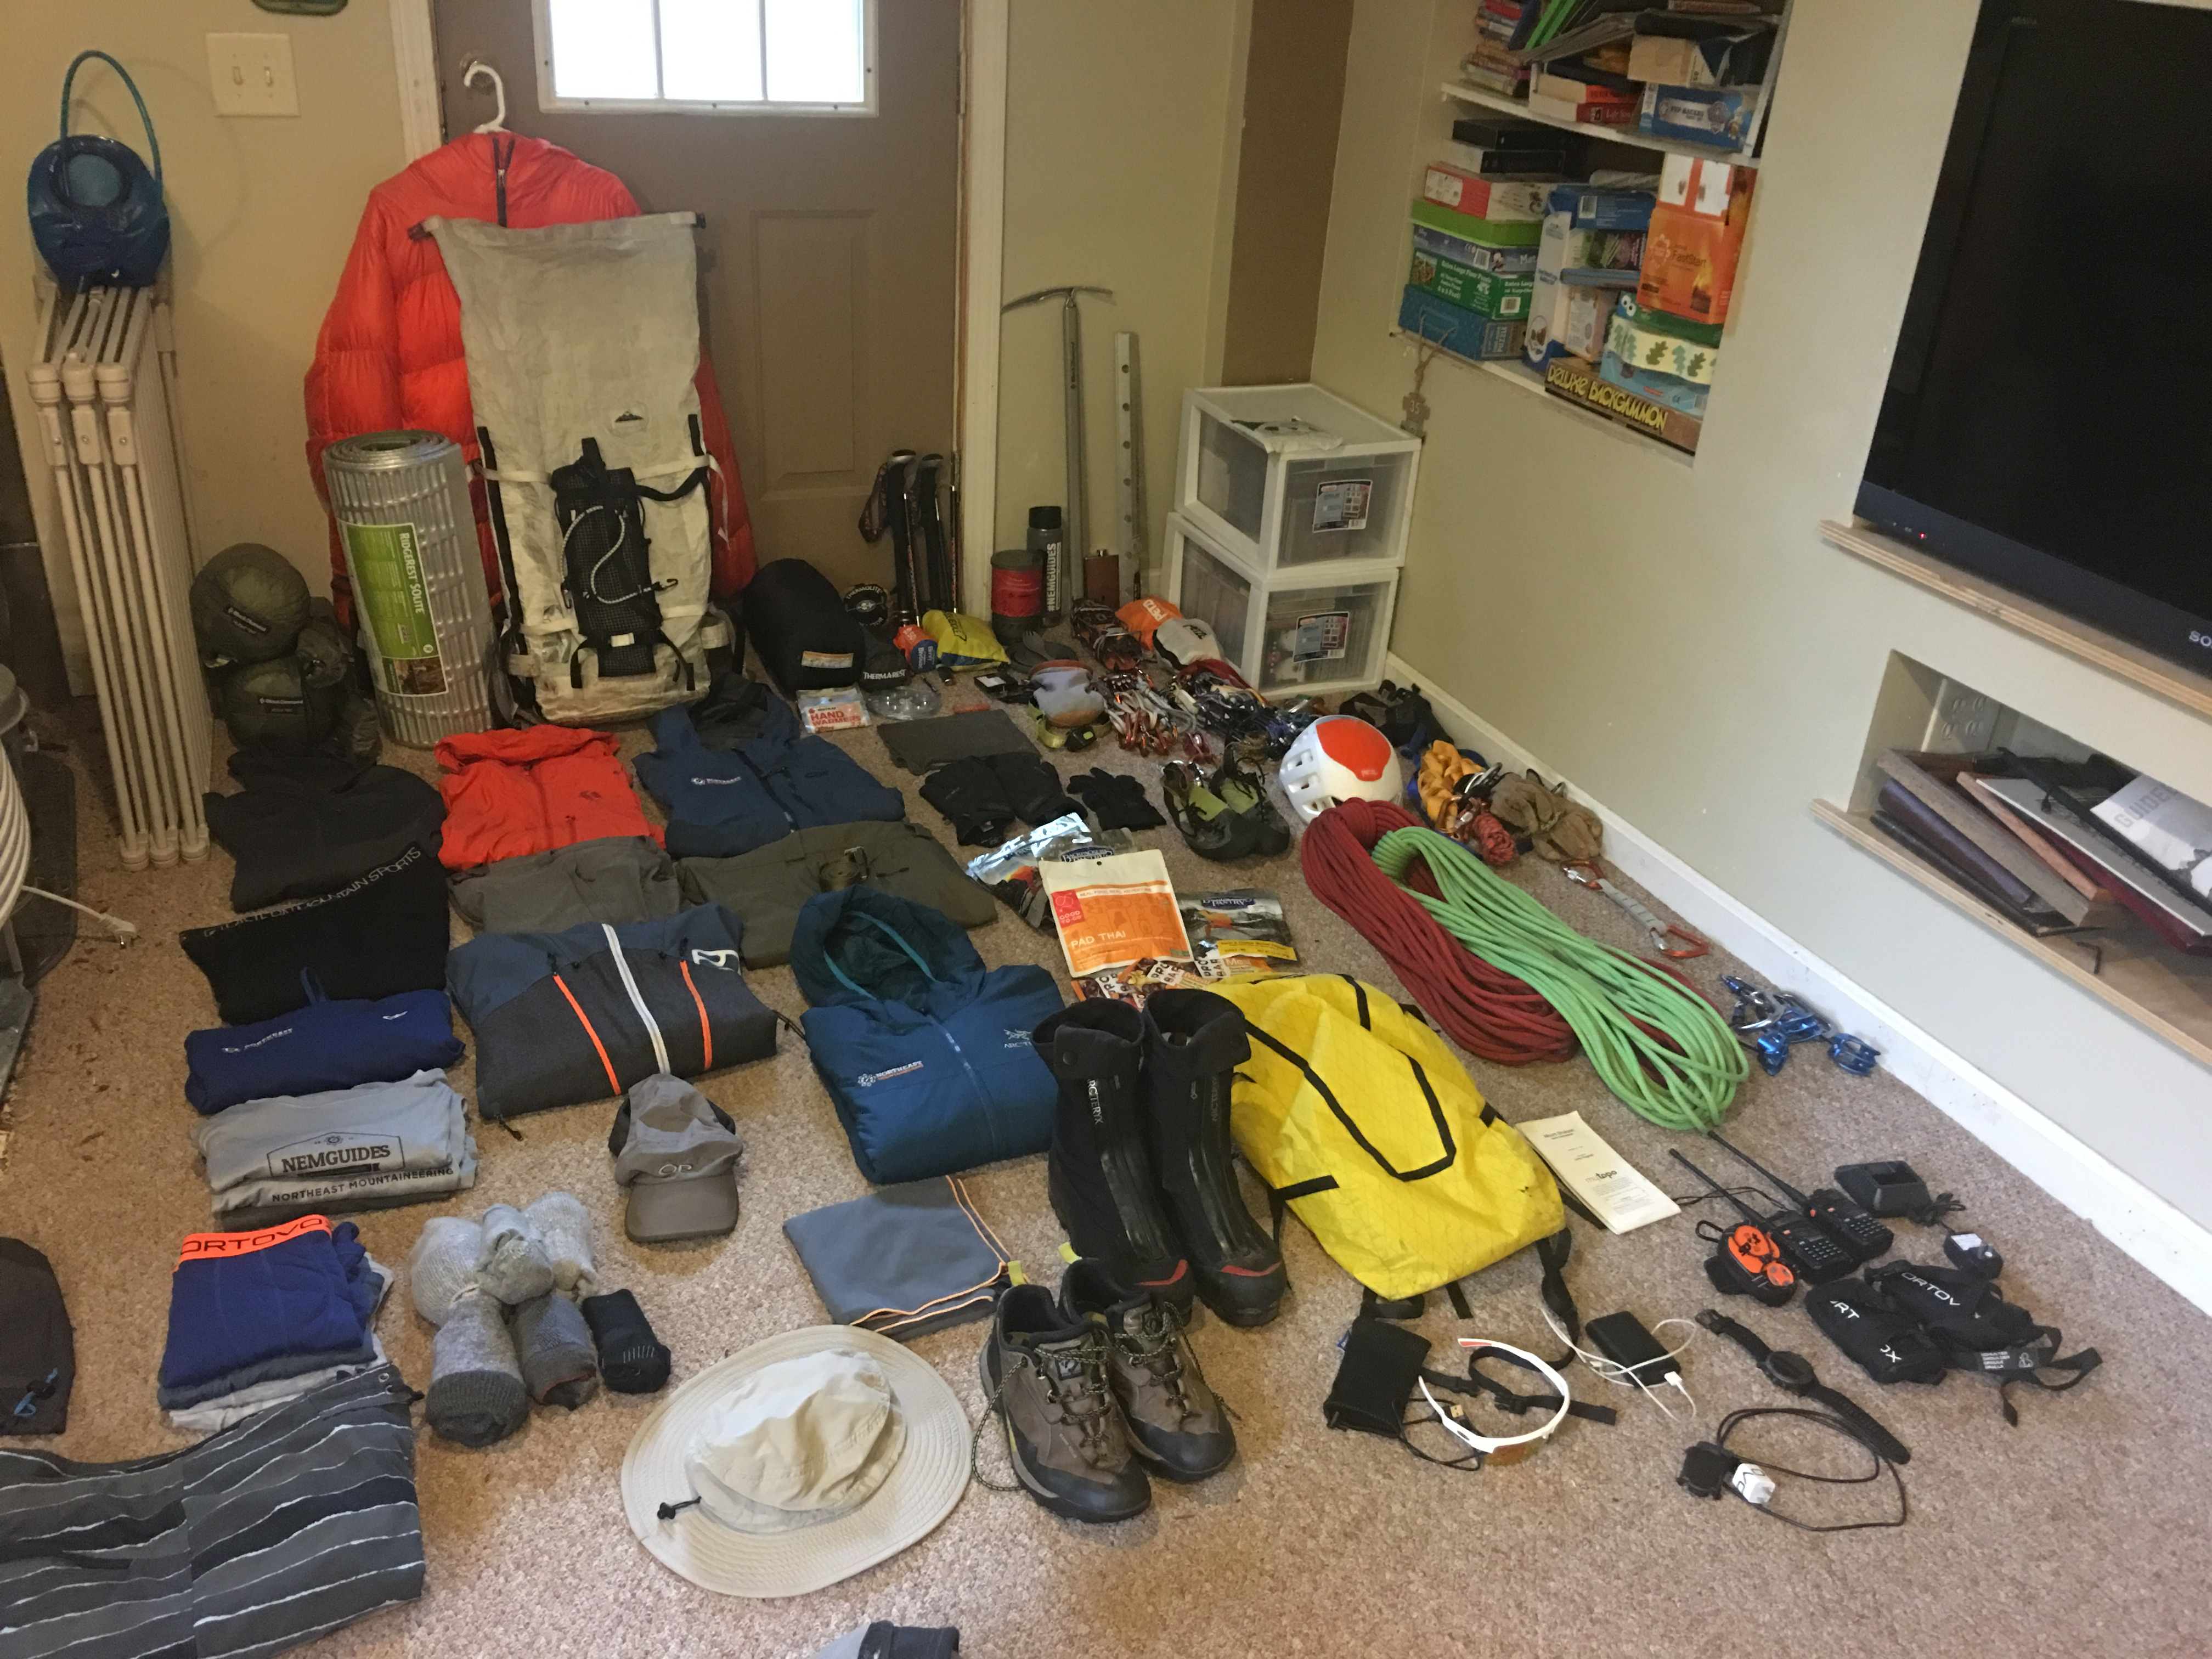 Packing for Cascades Climbing Trip